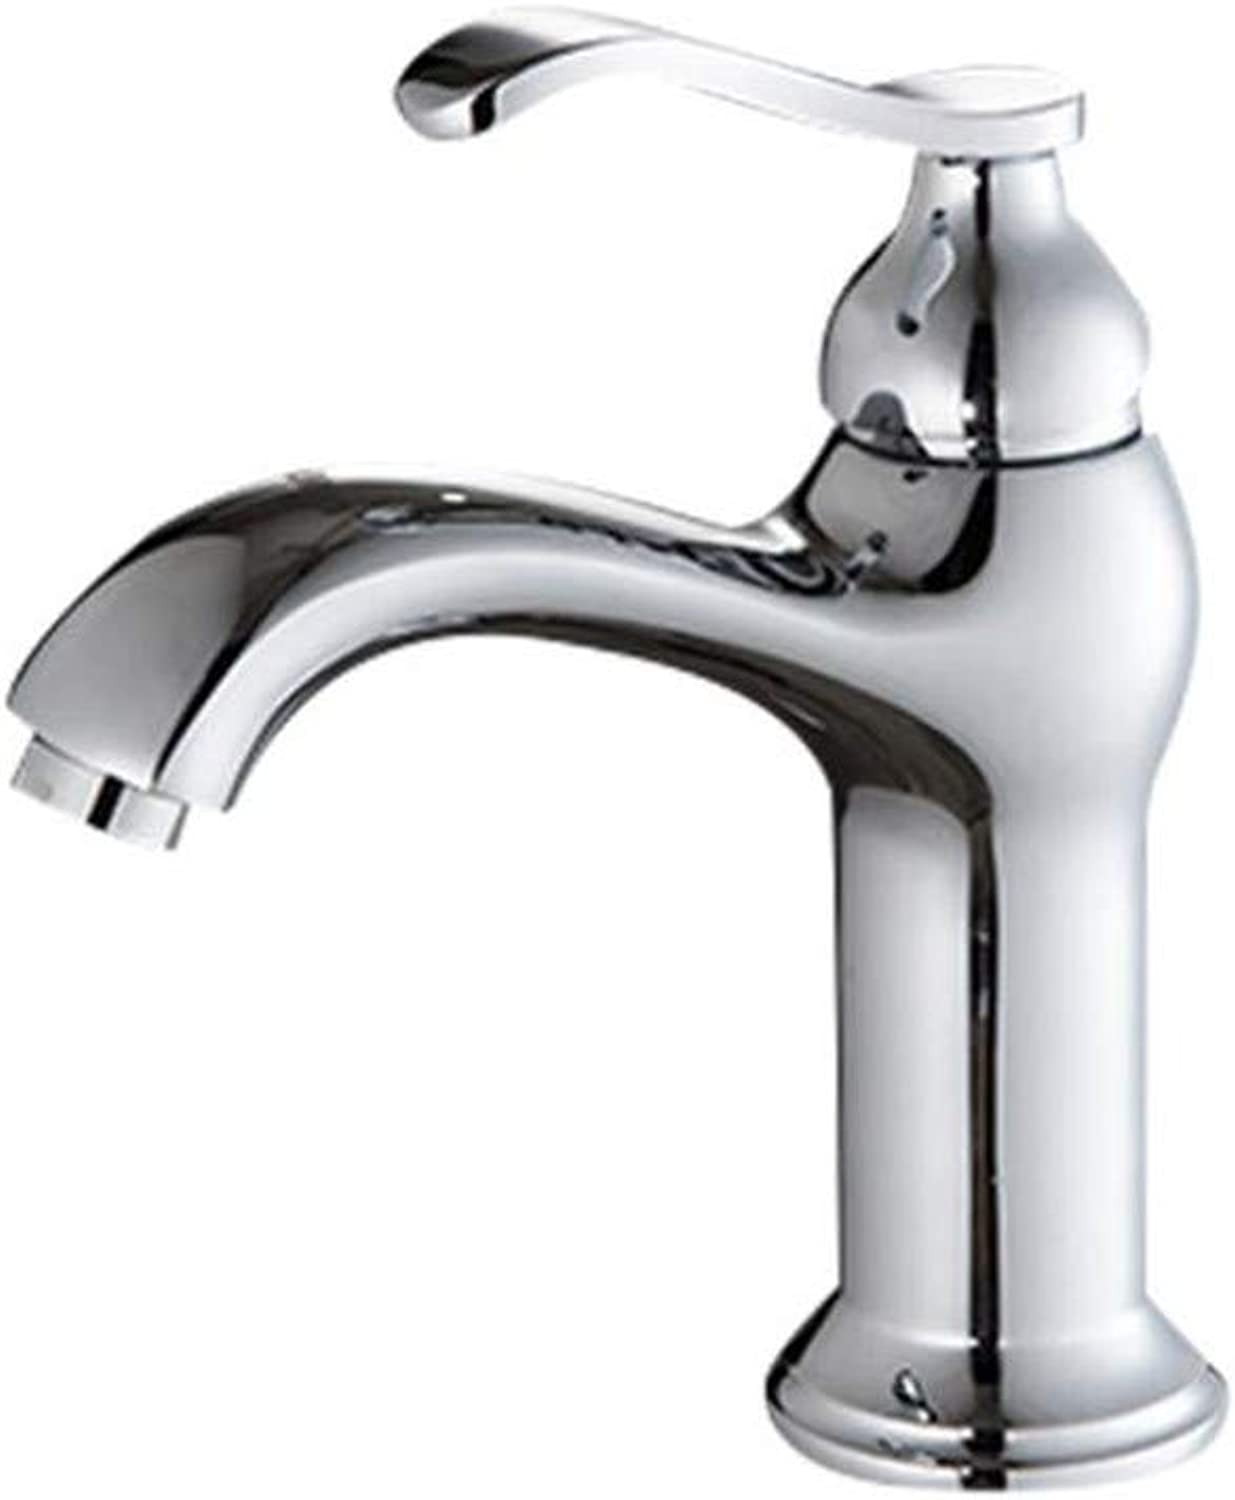 Bathroom Sink Basin Lever Mixer Tap Cold and Hot Water Faucet Single-Hole Basin Faucet Ceramic Spool 304 Stainless Steel Household Faucet